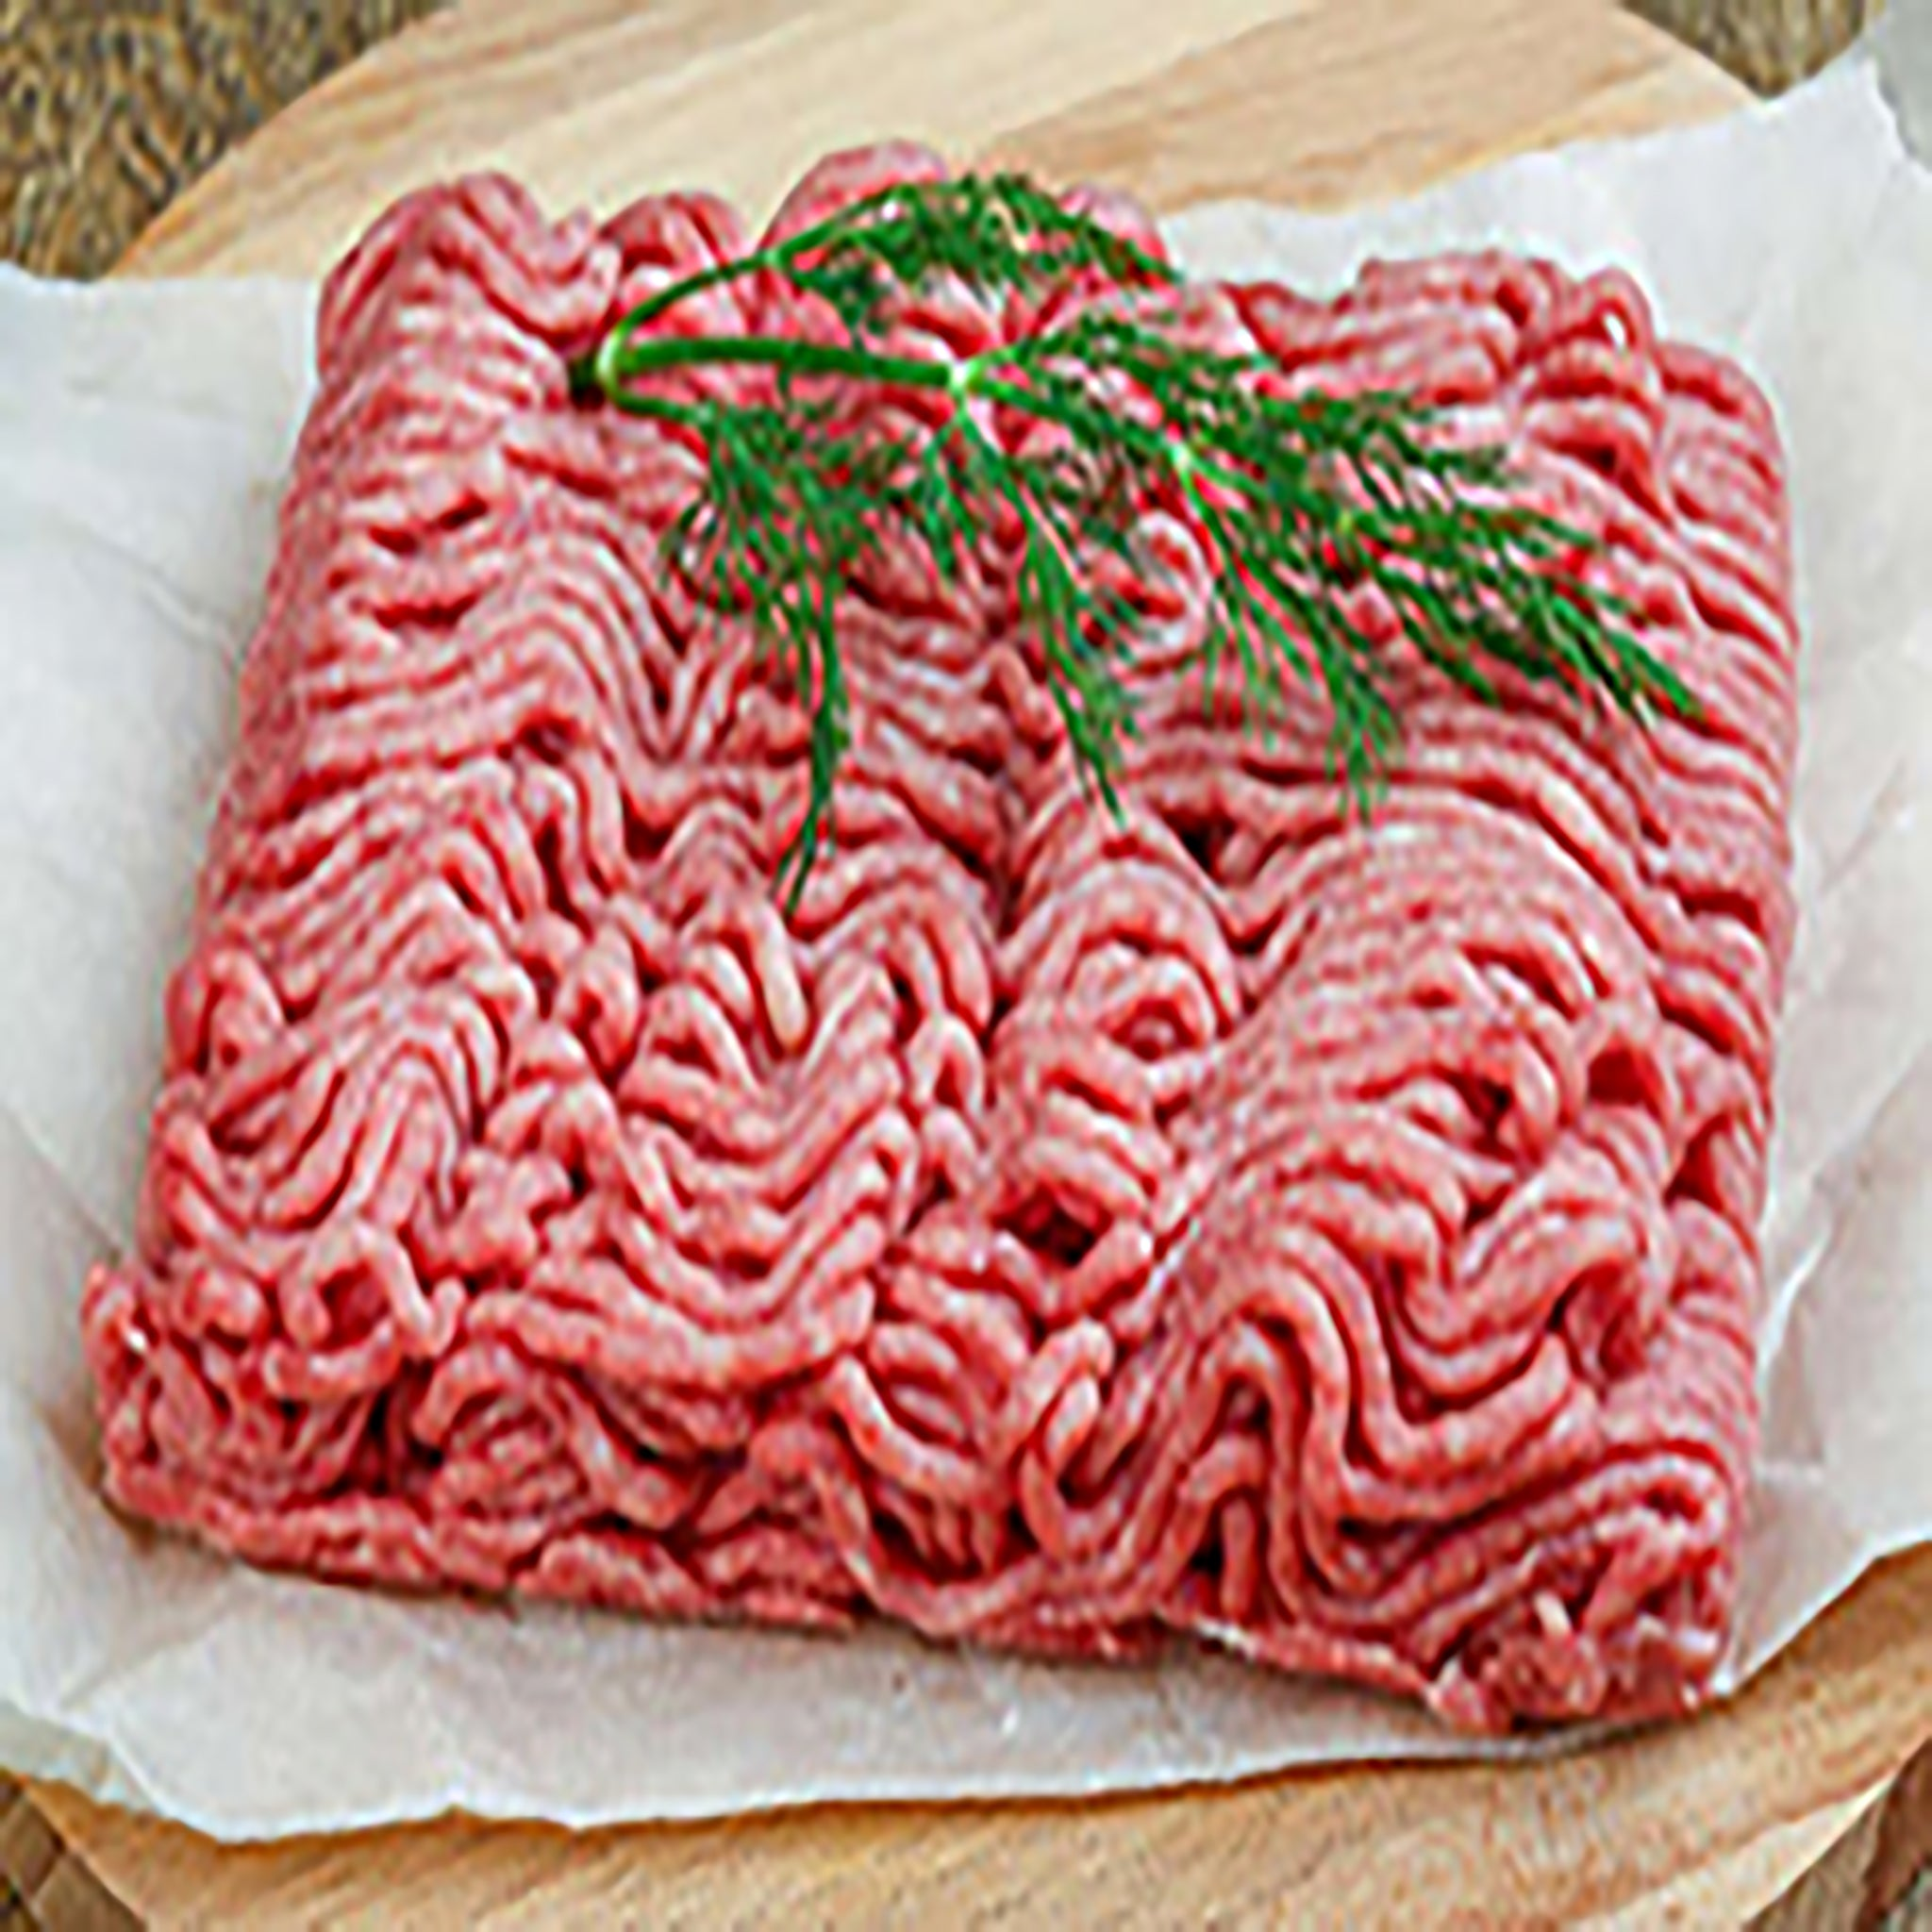 Extra Lean Ground Veal /lb